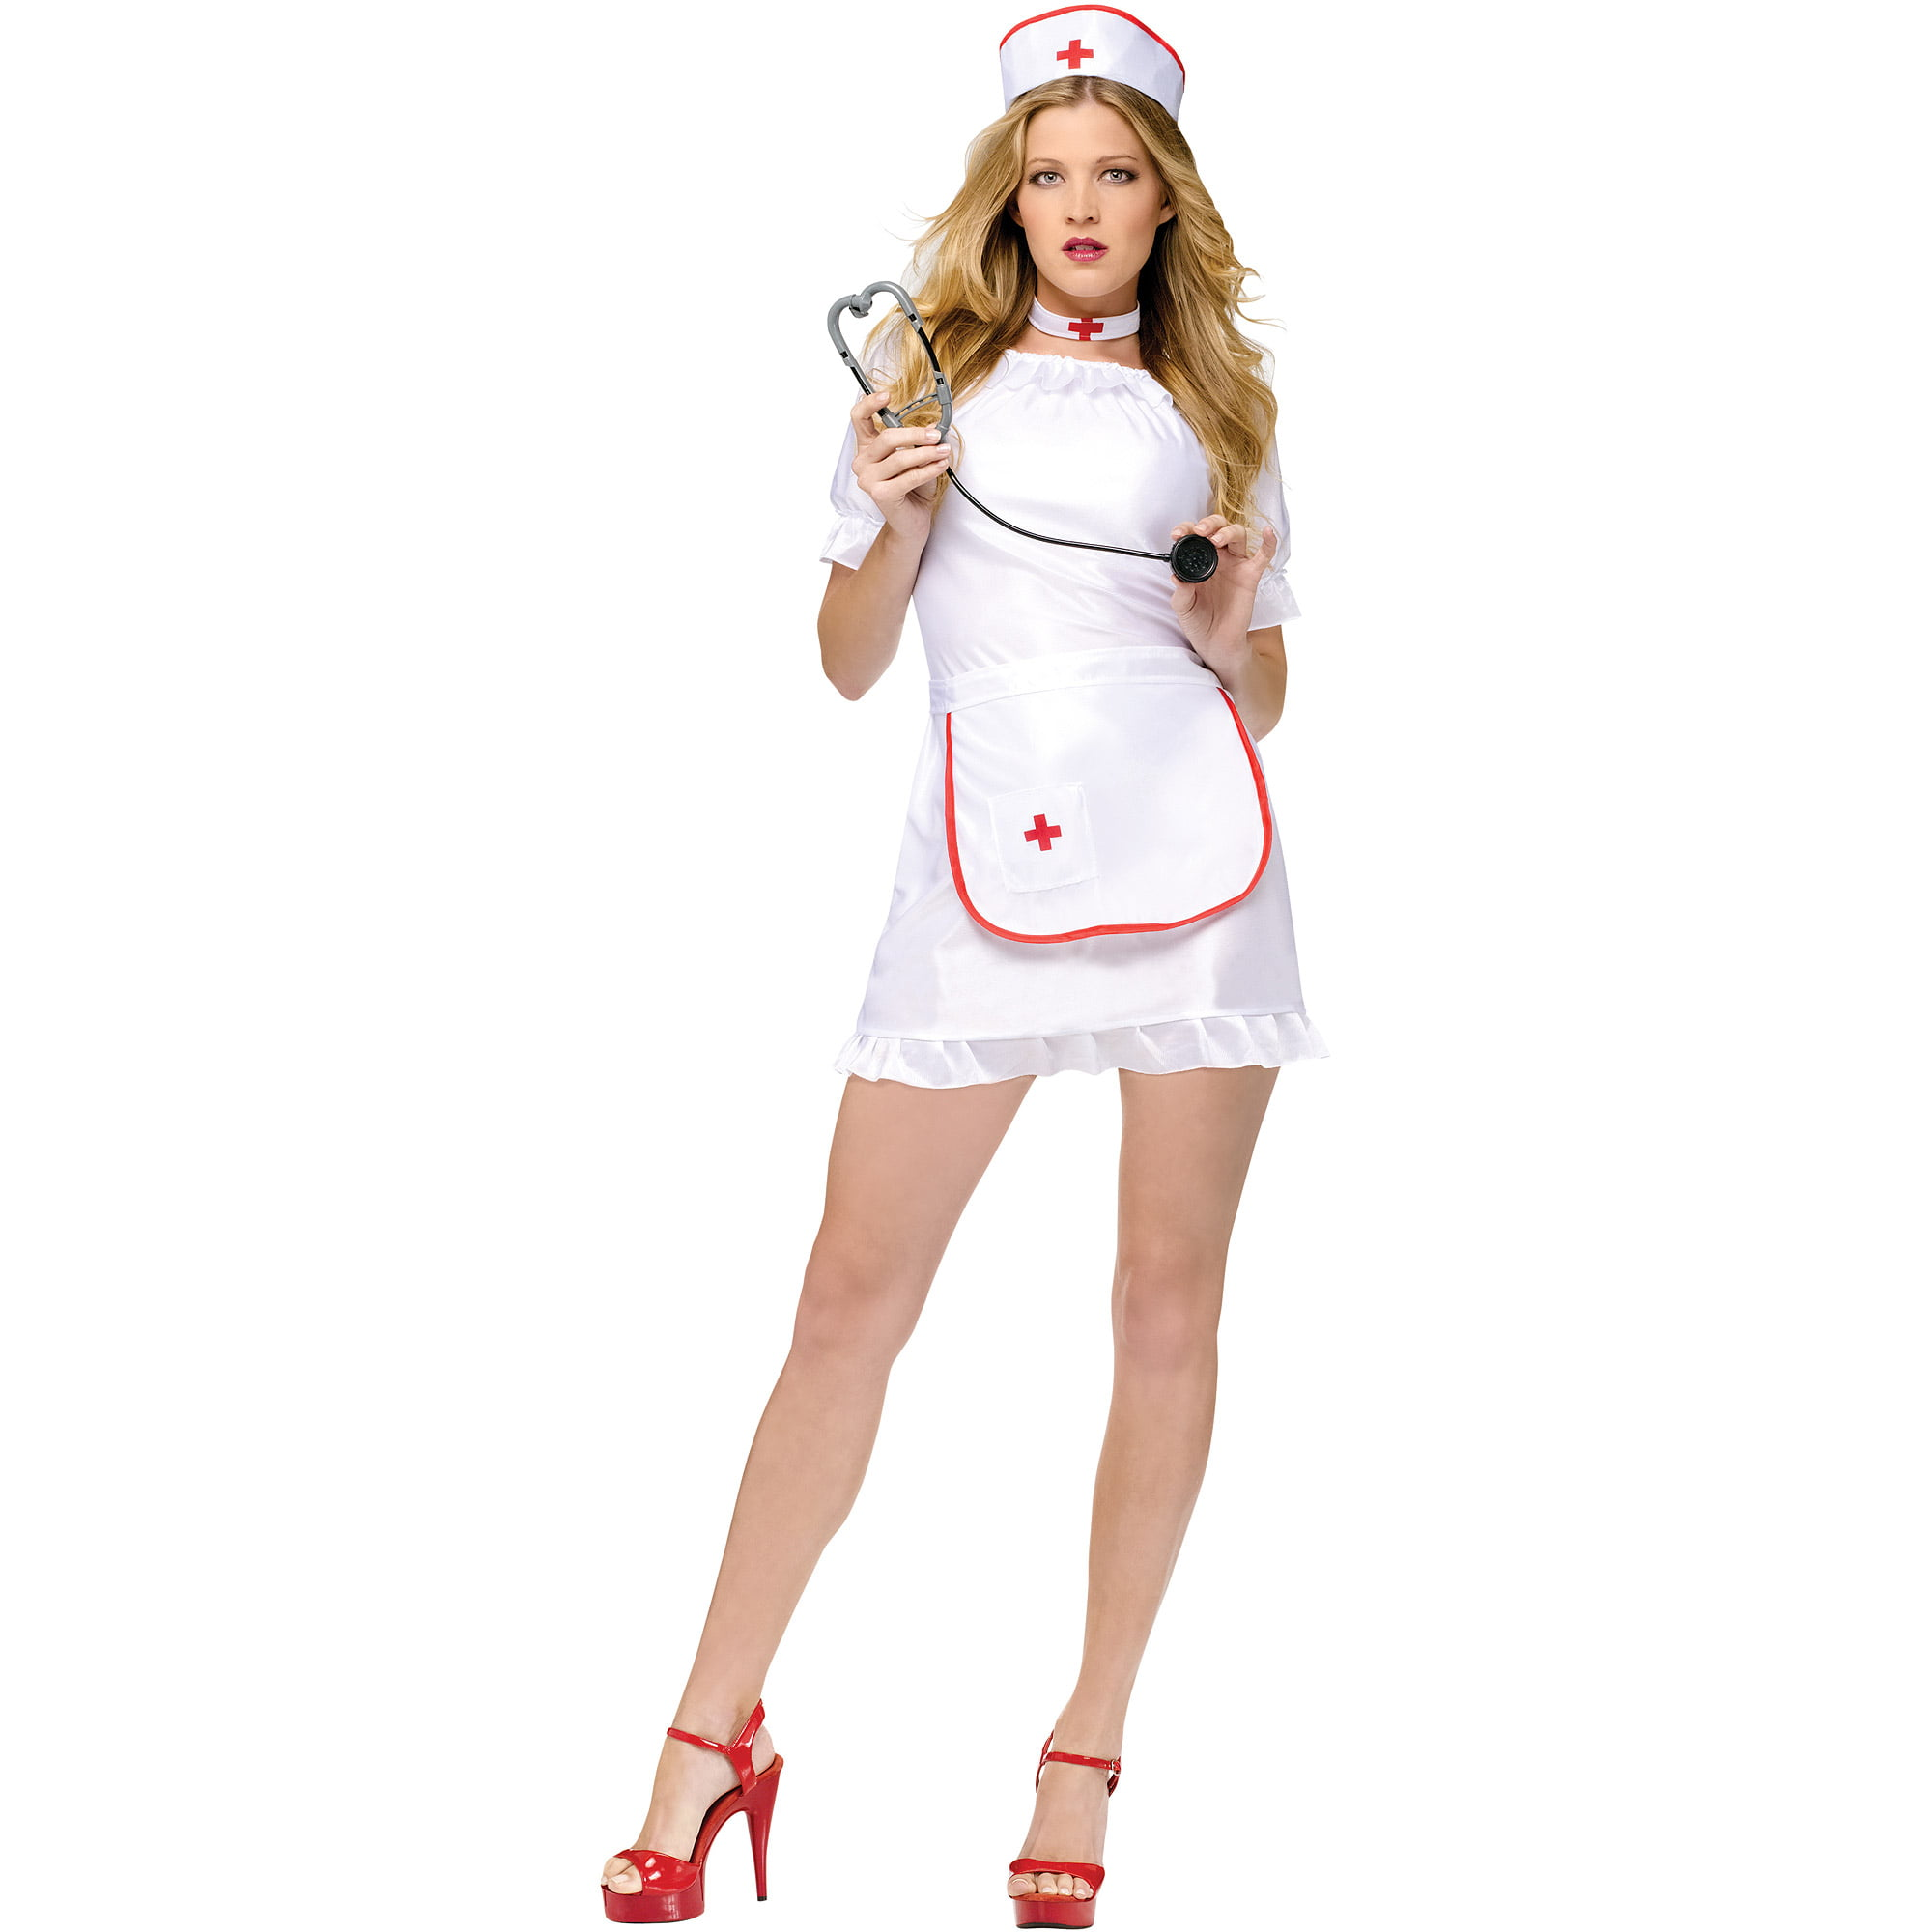 Women's Halloween Costumes - Walmart.com